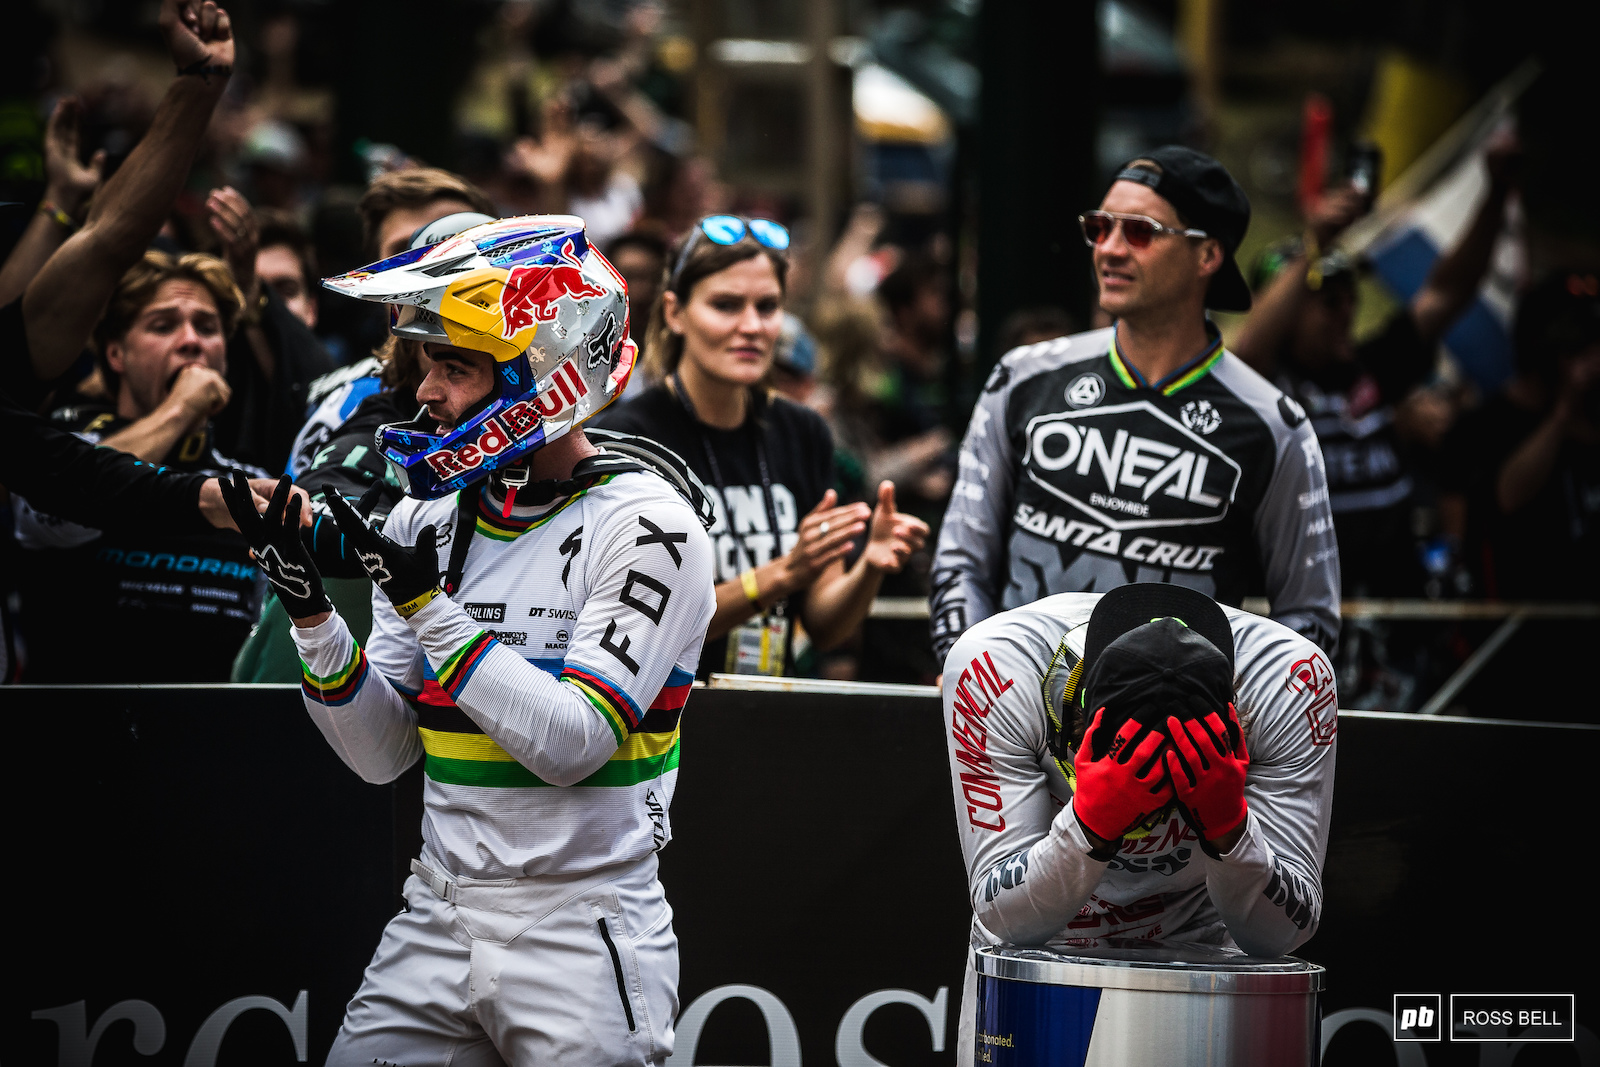 The moment it was all decided. Danny Hart crosses the line and punts Amaury Pierron out of the hot seat meaning Loic Bruni wins the title. You couldn t make it up.